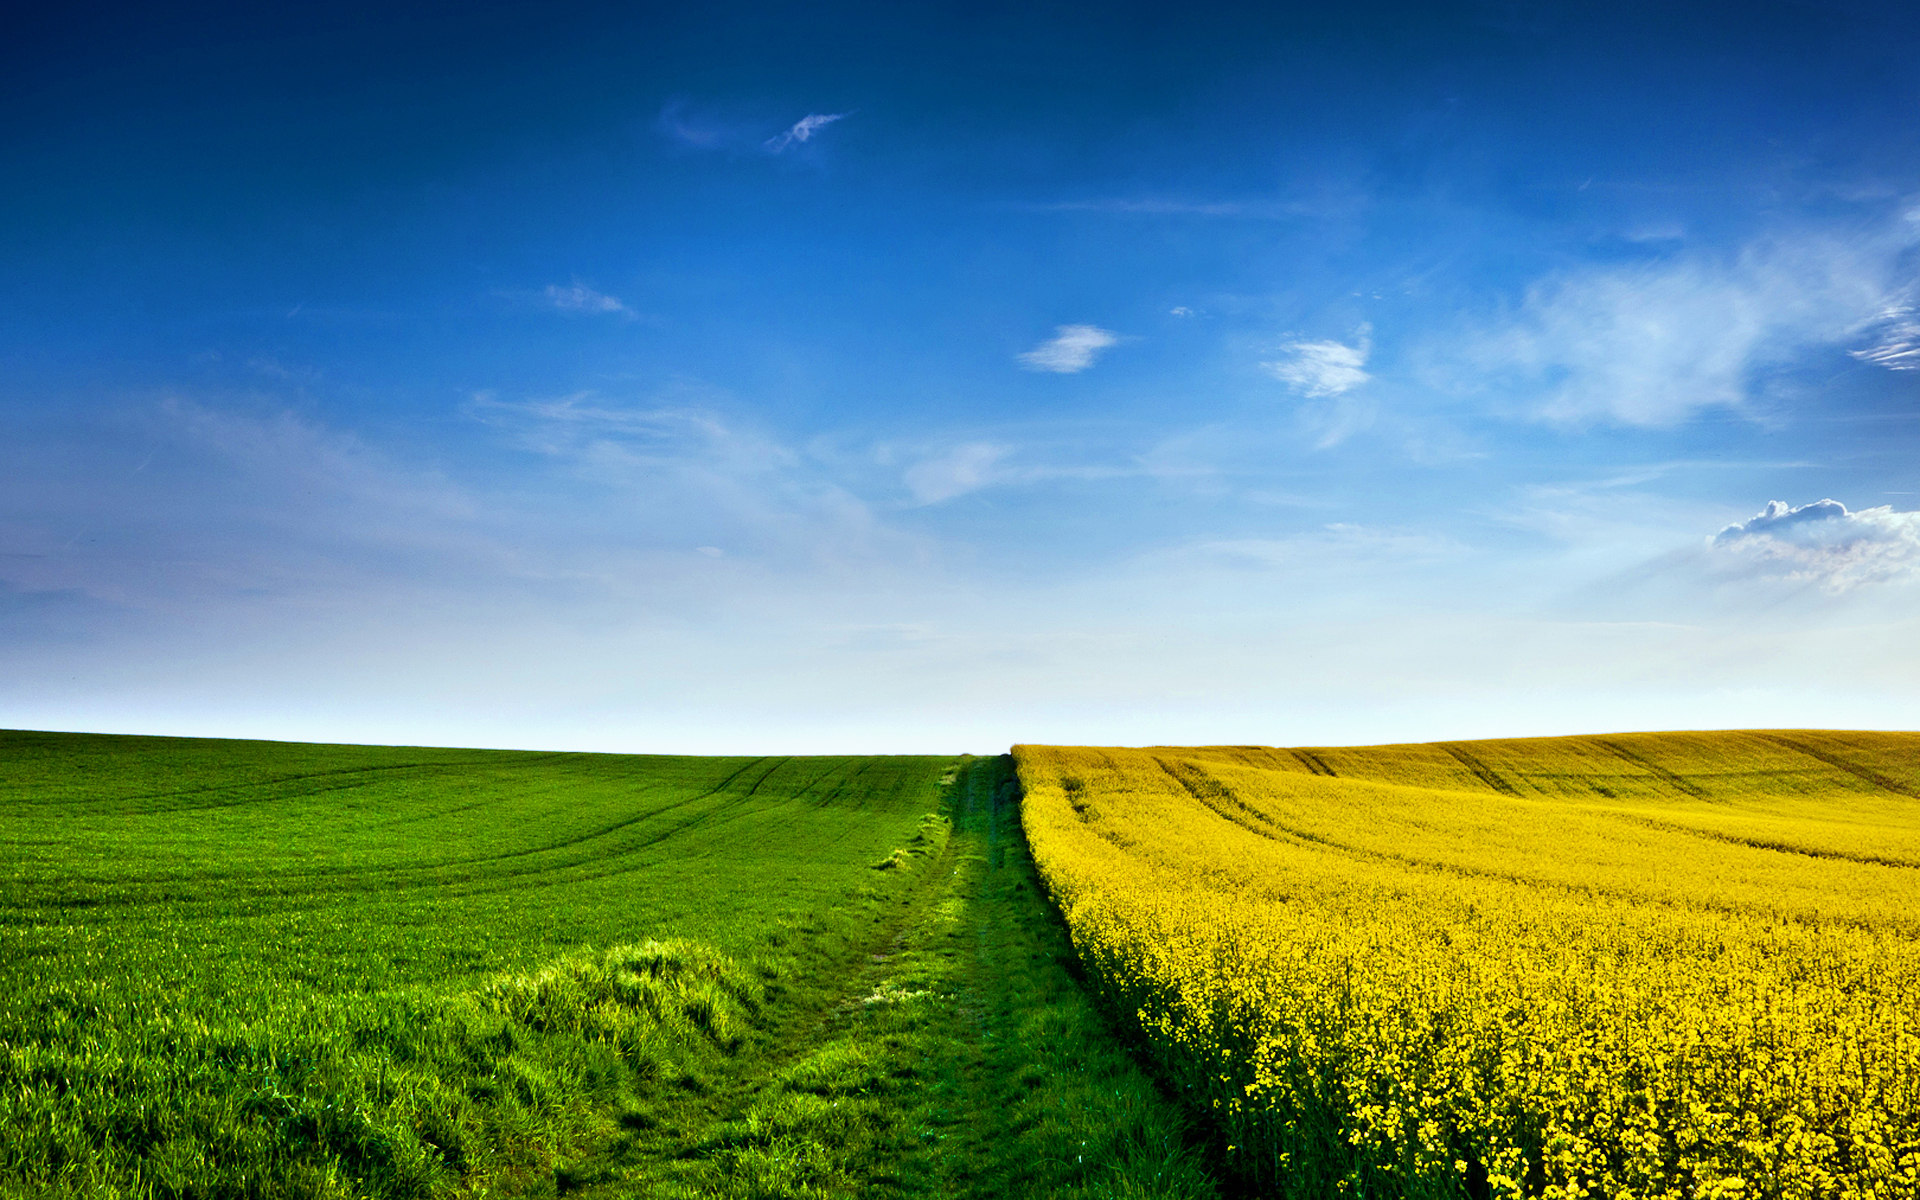 Field Wallpaper; Field Wallpaper; Field Wallpaper ...